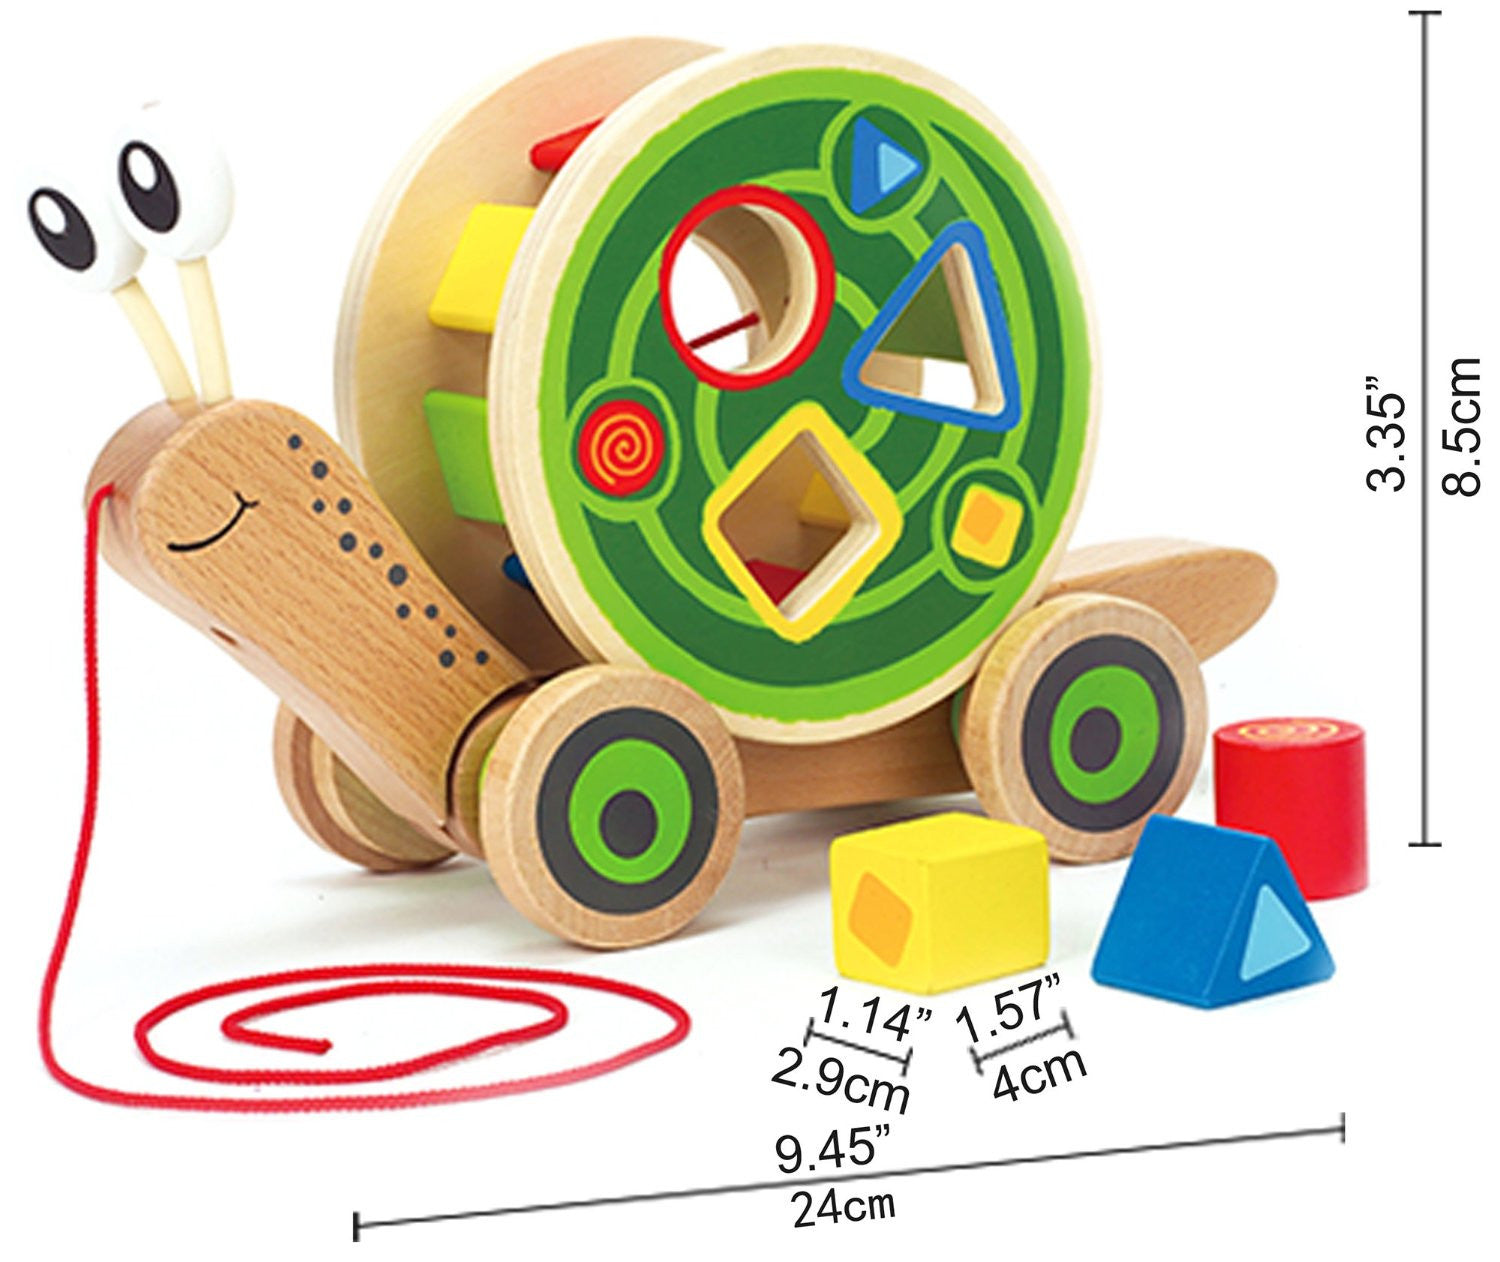 PULL AND PLAY SHAPE SORTER